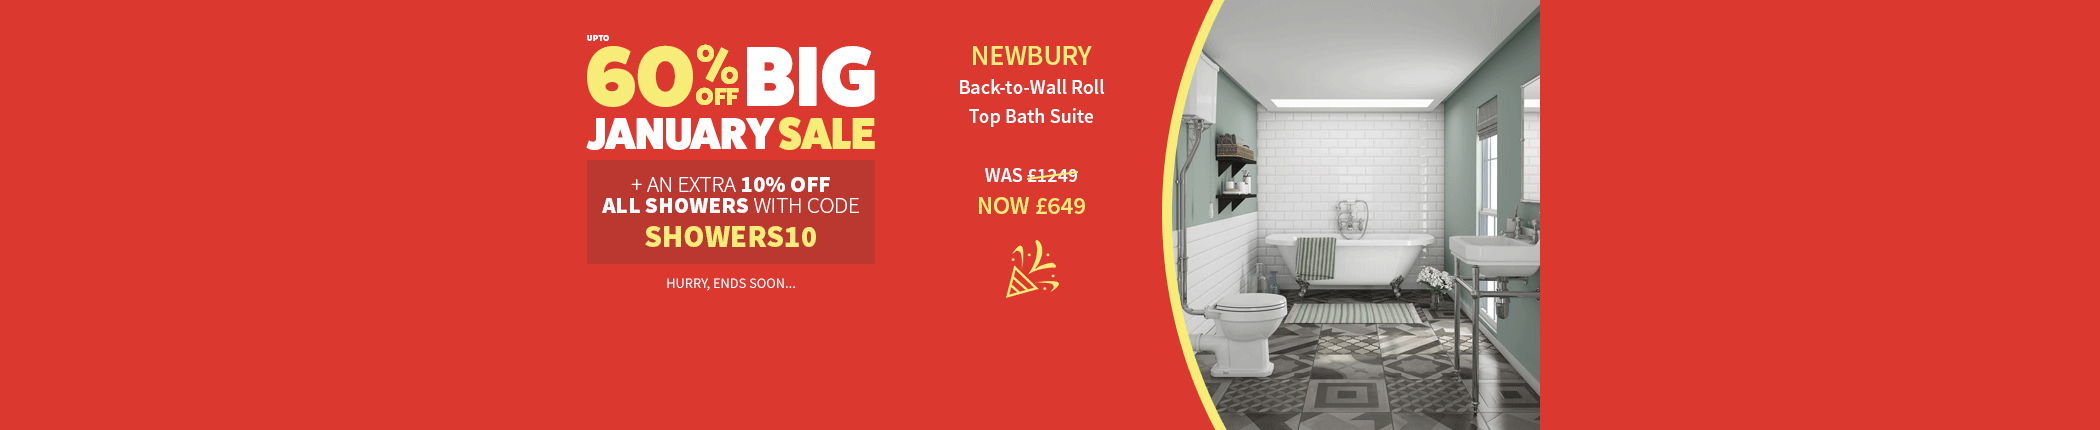 big-january-sale-hudson-newbury-back-to-wall-roll-top-bath-suite-countdown-jan17-hbnr